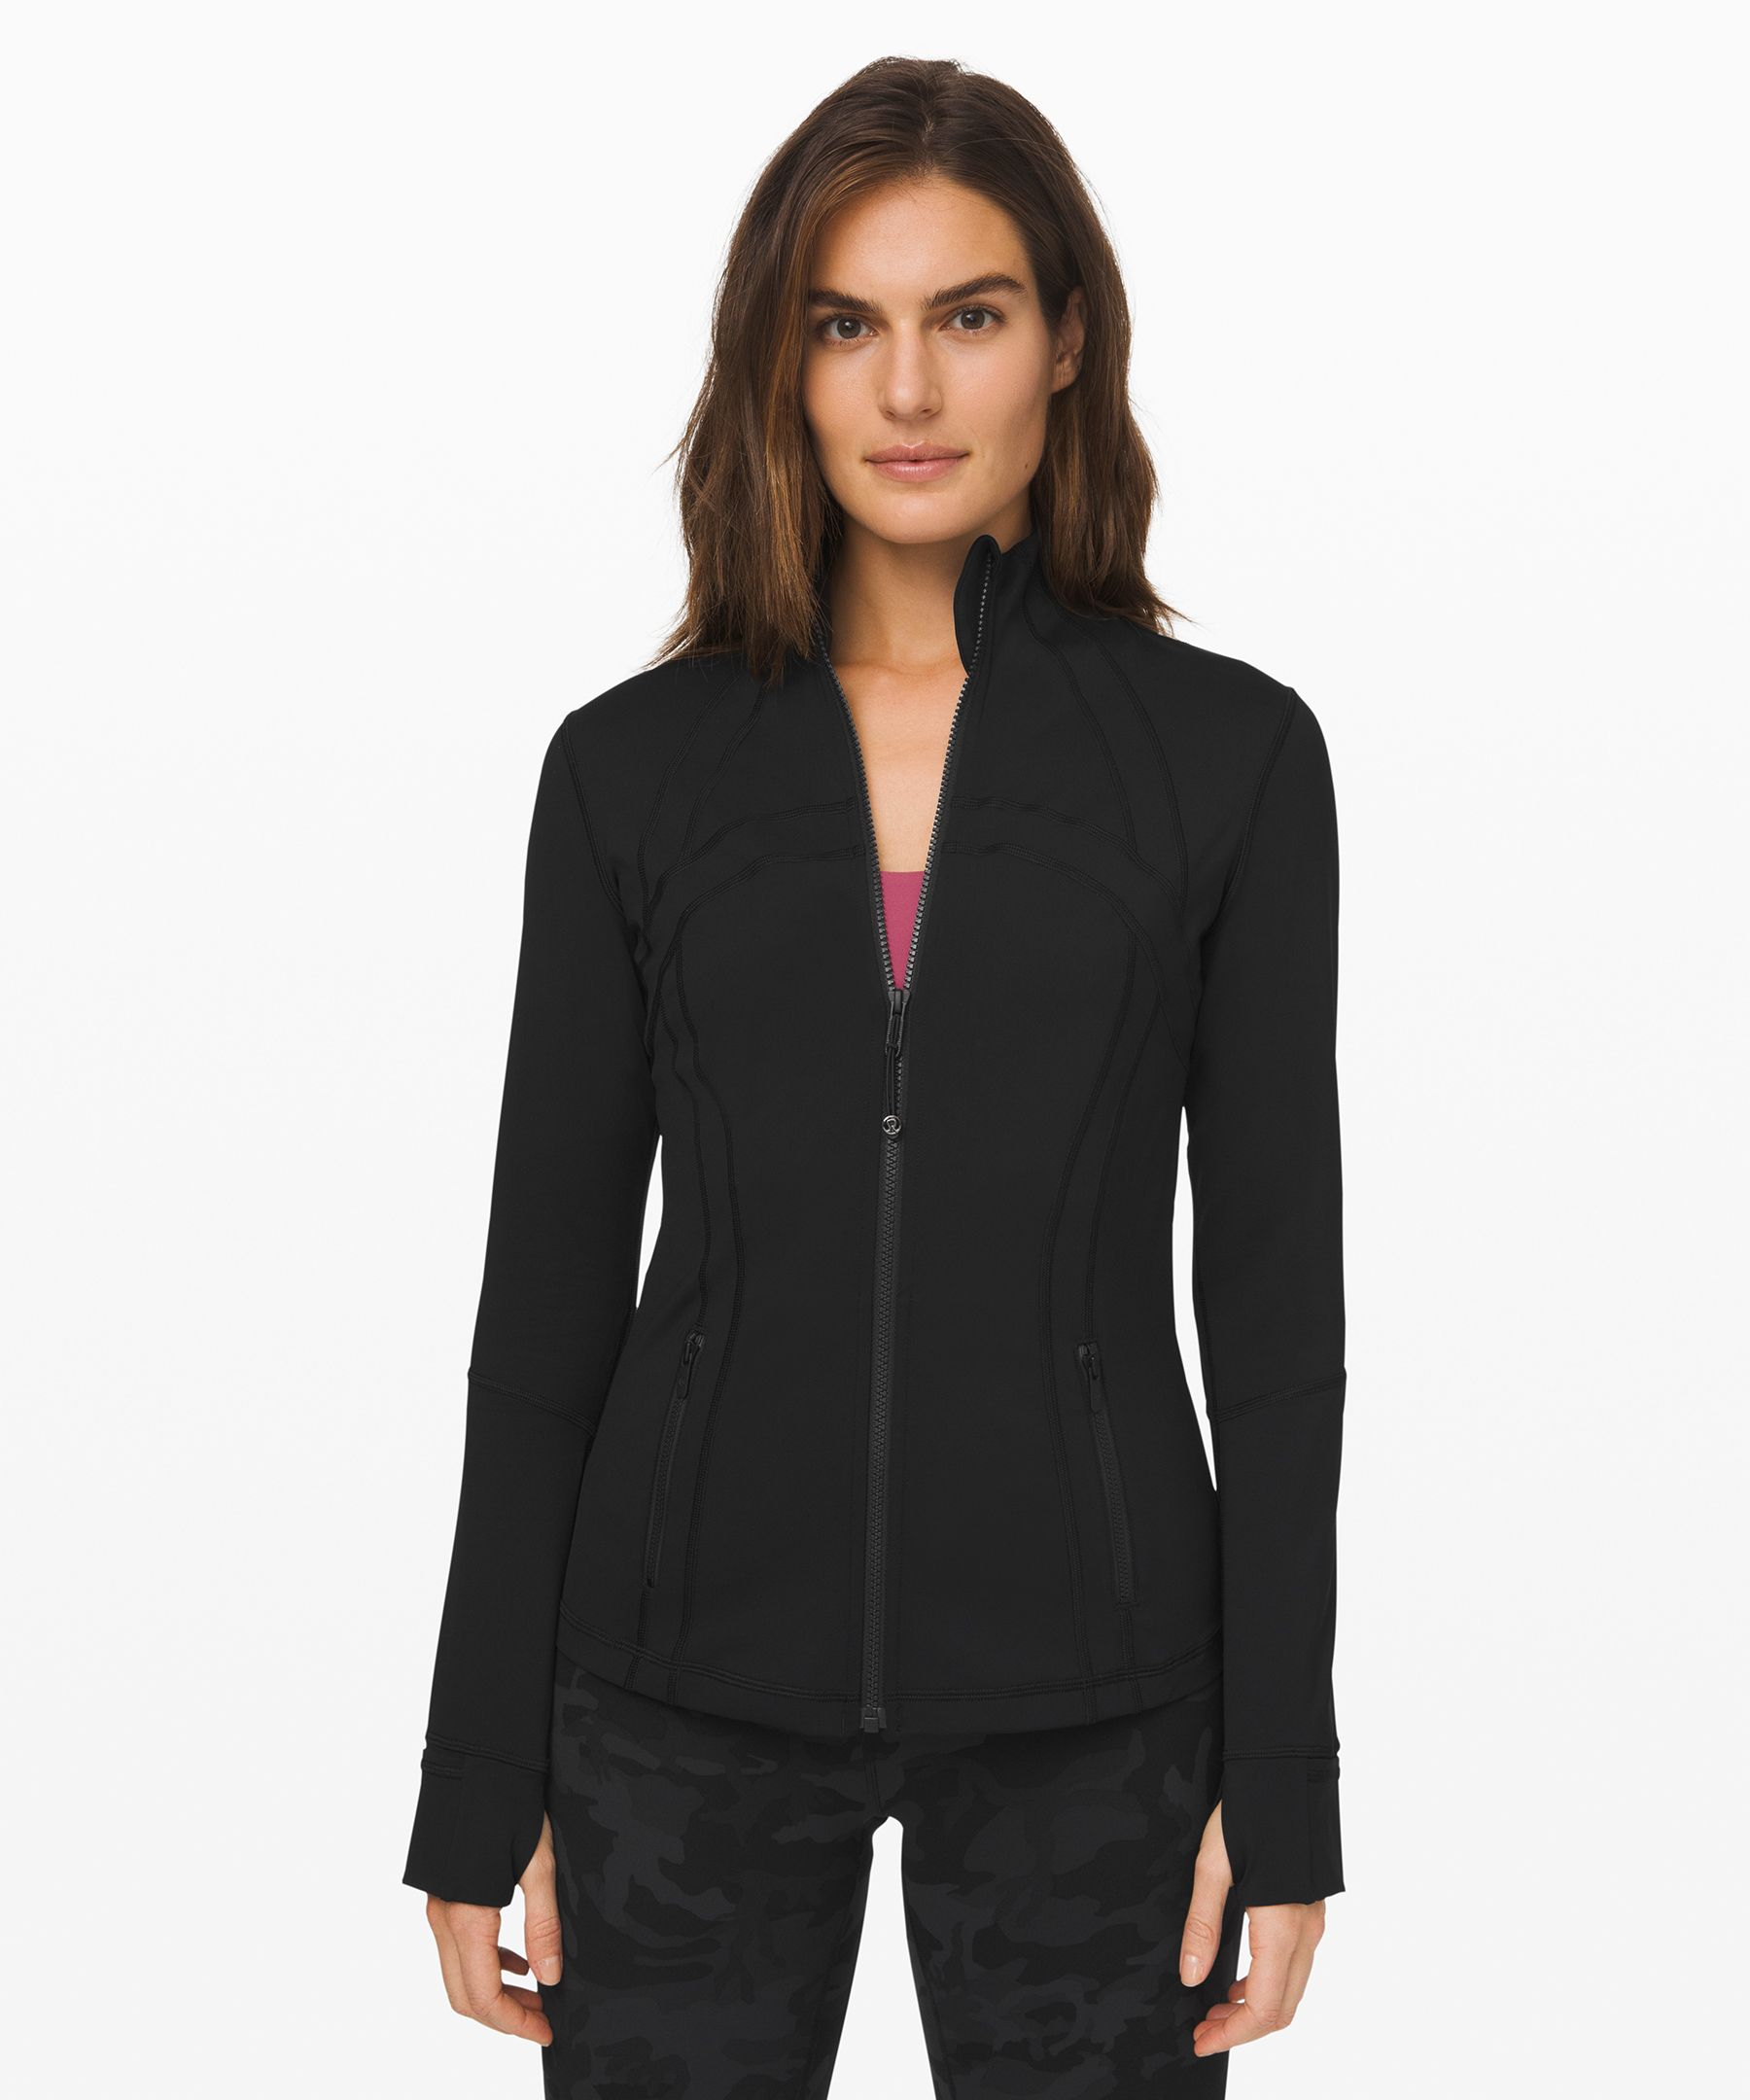 Whether you\\\'re up for  adventure or ready for down  time, feel empowered in this  lightweight, technical jacket  that contours your body for a  perfect, do-anything fit.